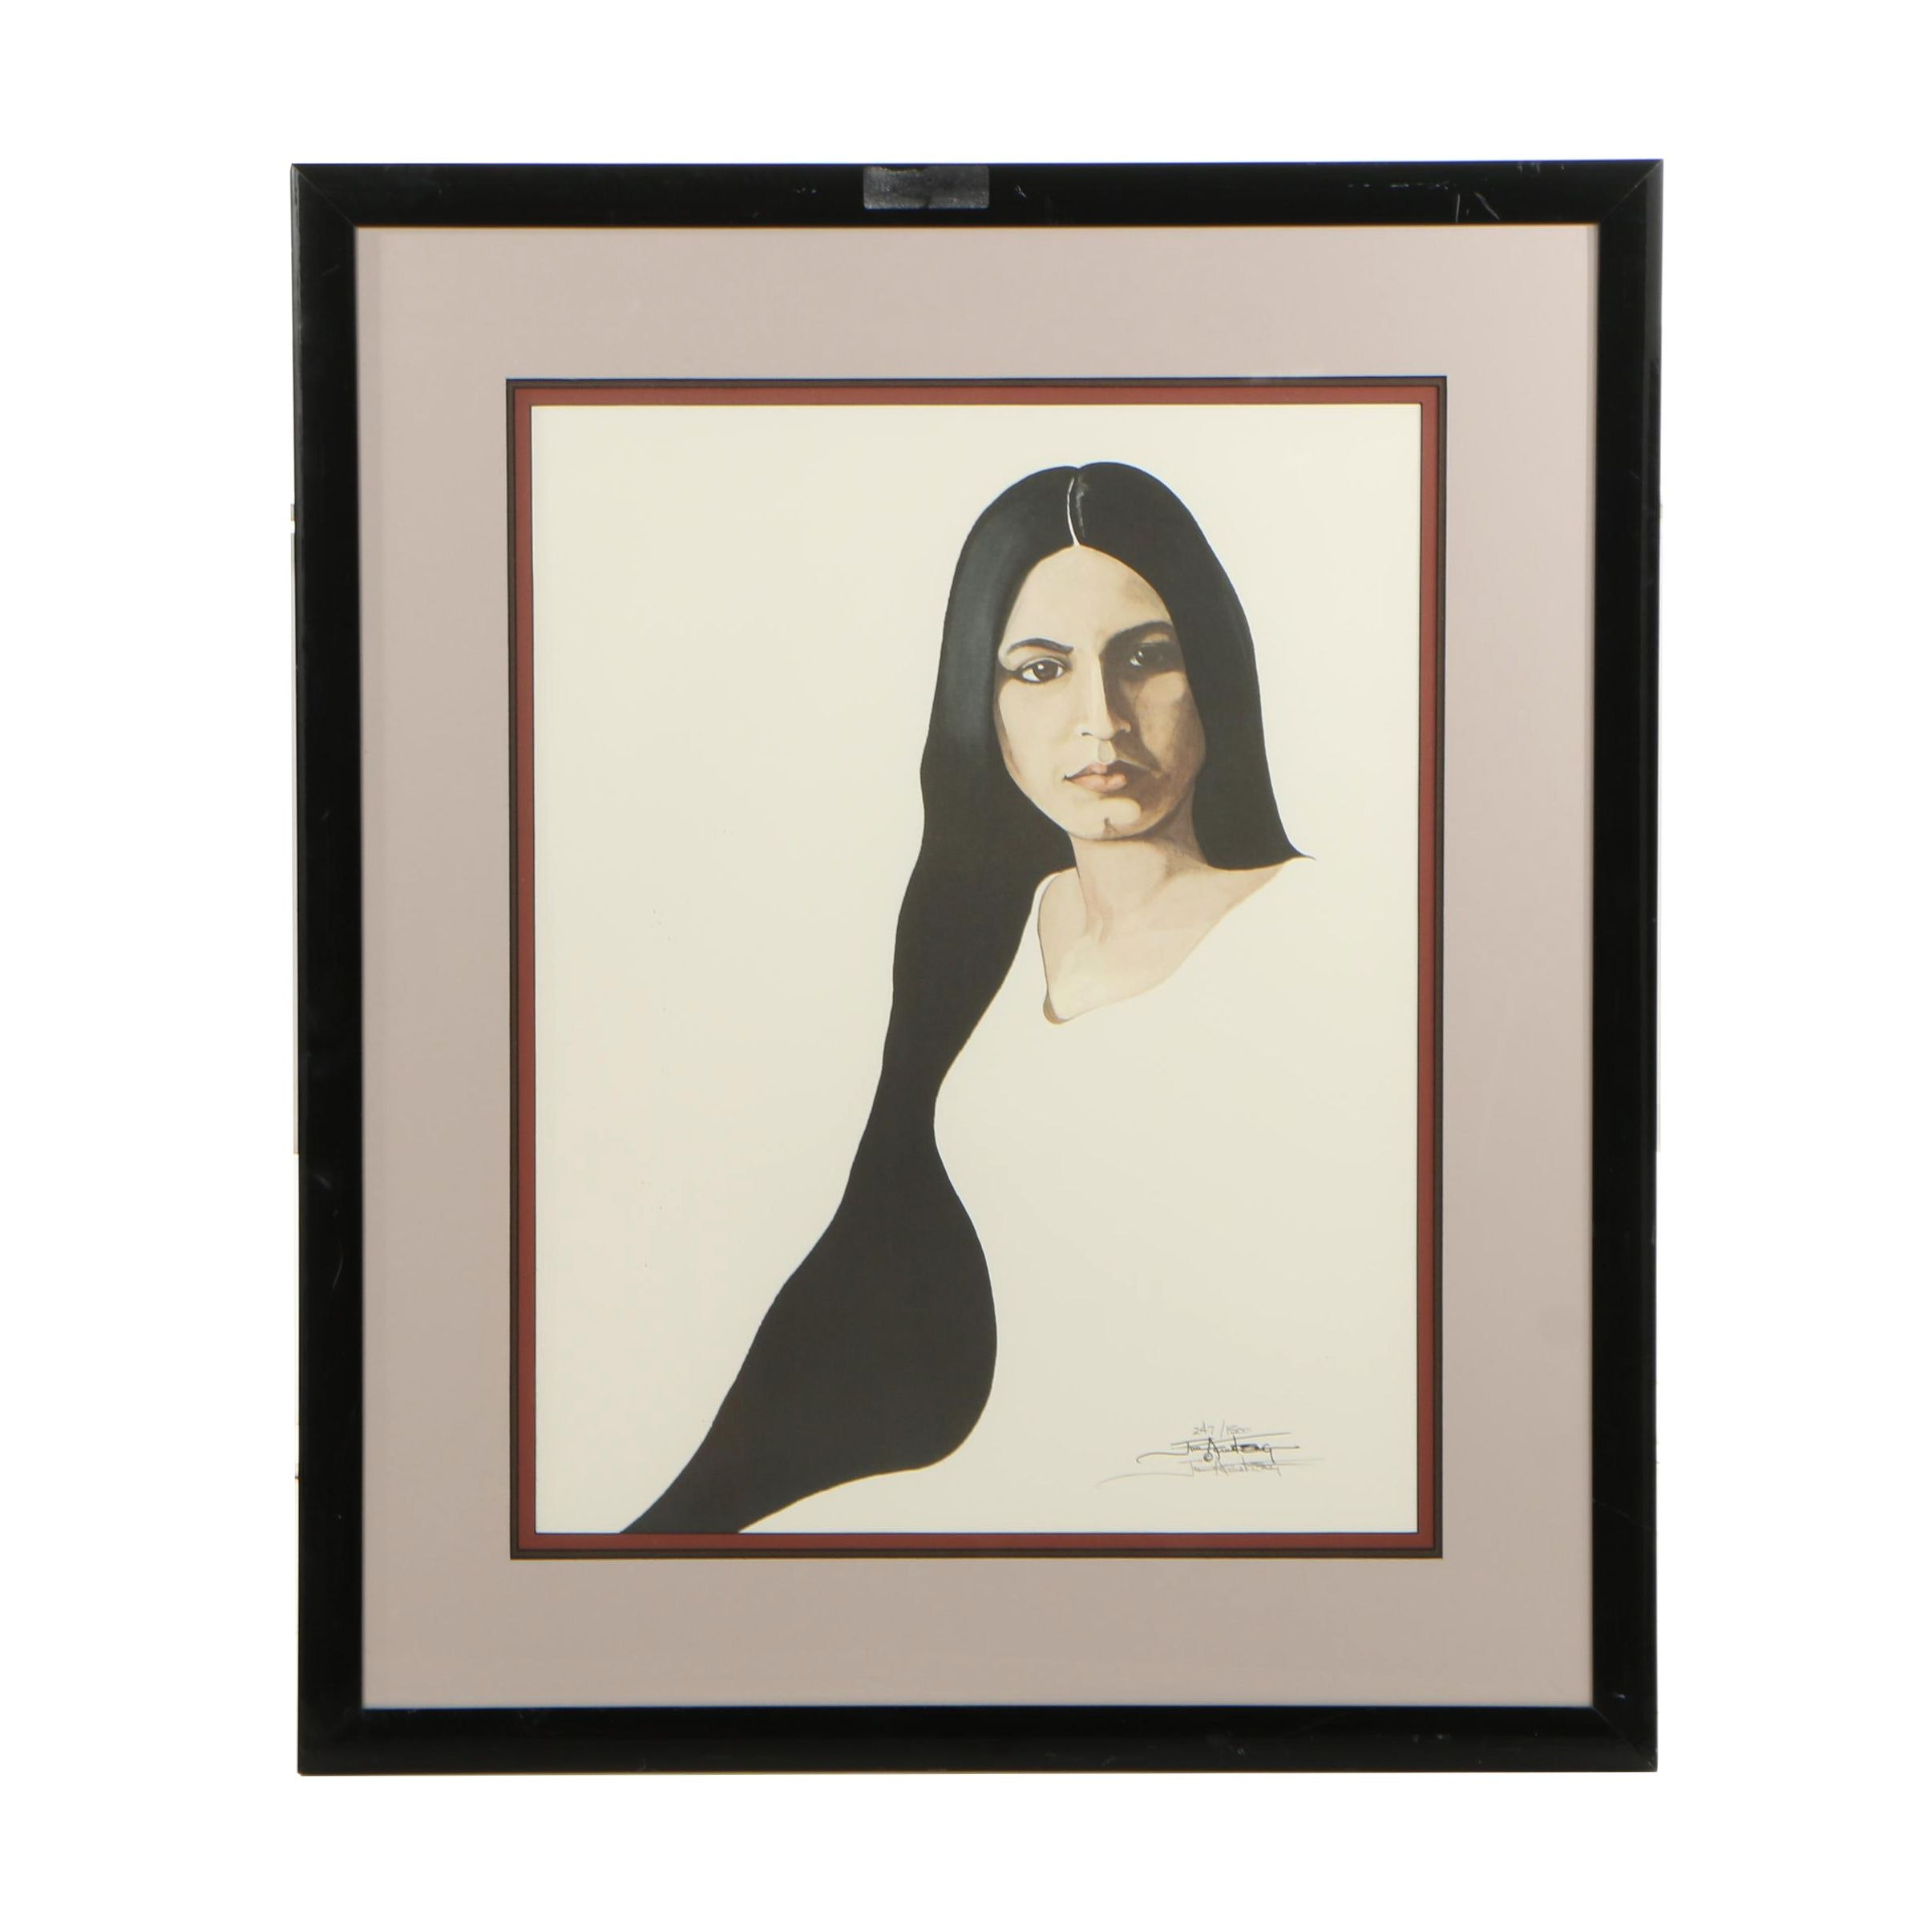 Jim Armstrong Limited Edition Offset Lithograph of Woman